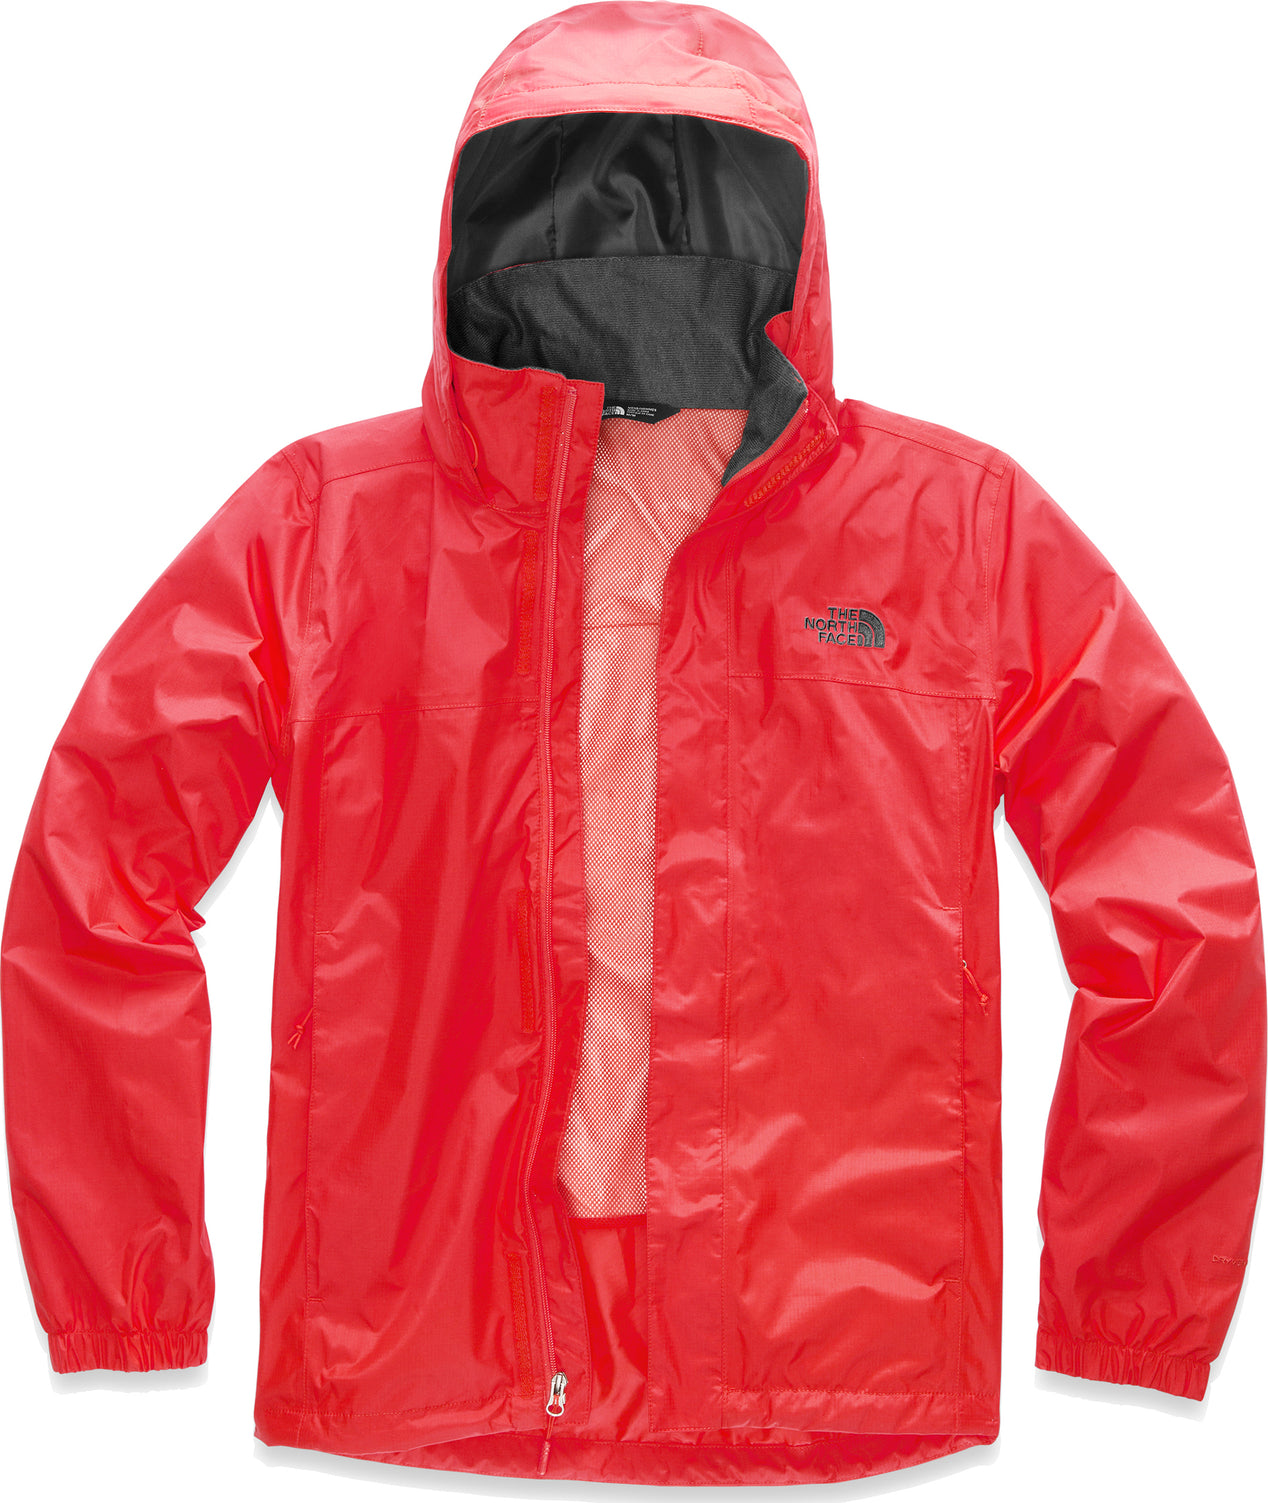 739f17877b06 The North Face Resolve 2 Jacket - Men s